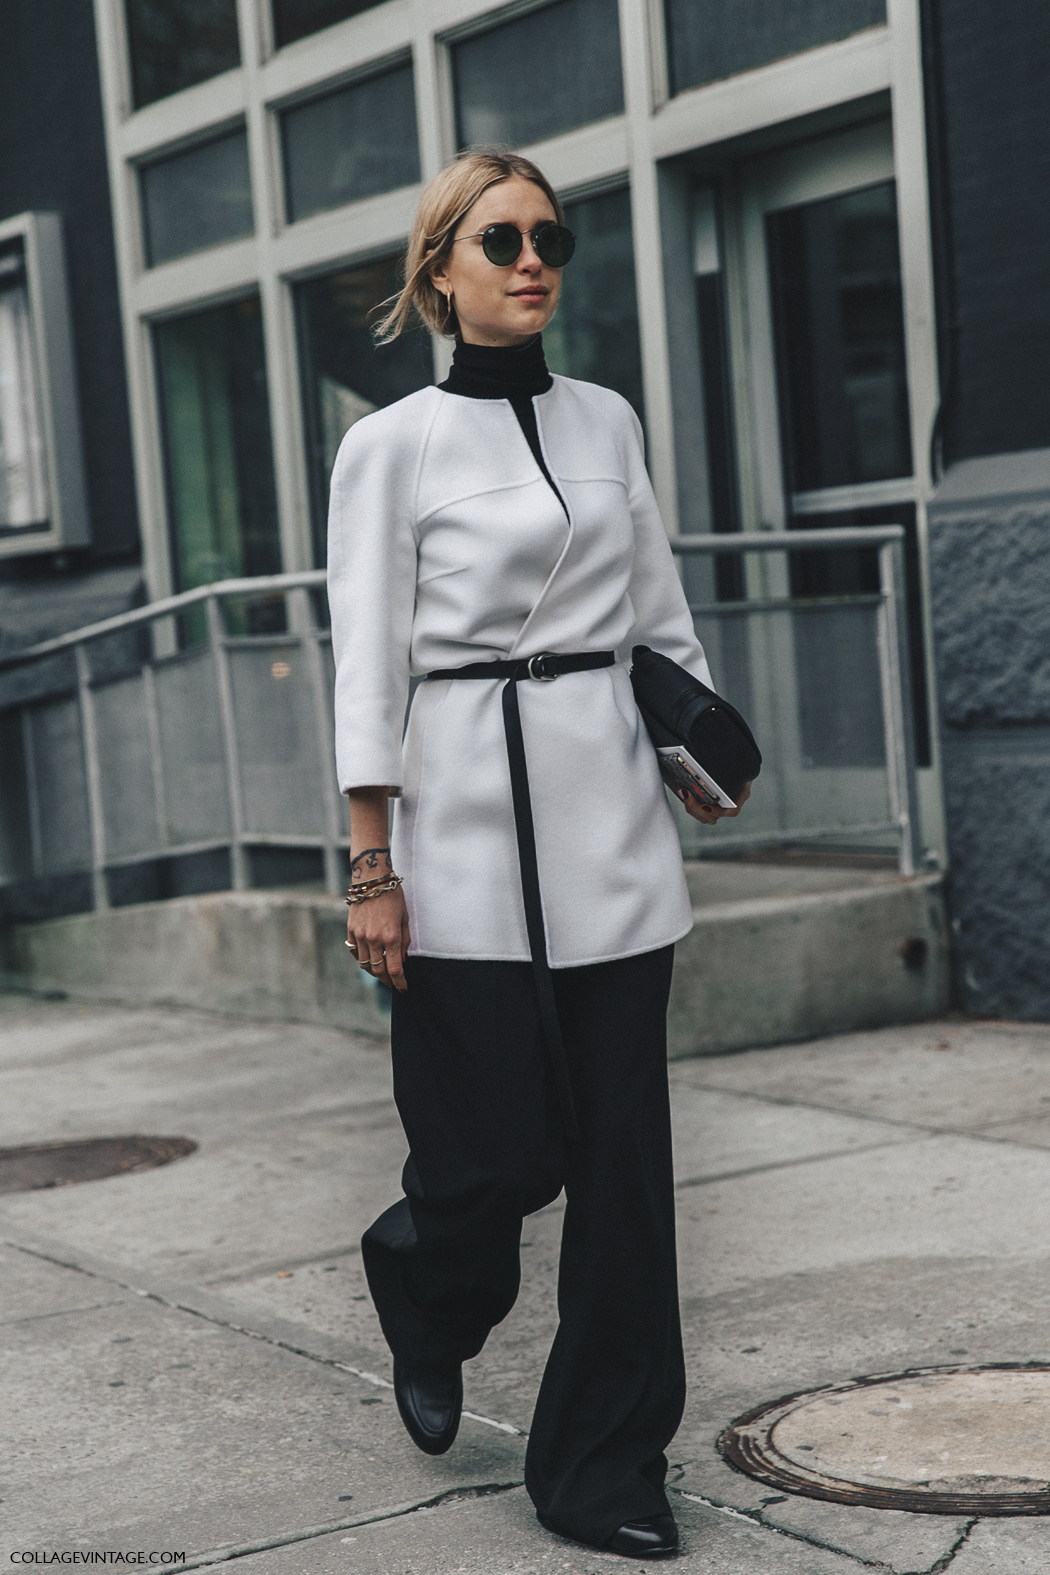 NYFW-New_York_Fashion_Week-Fall_Winter-17-Street_Style-Black_and_White-Pernille_Teisbaek-2